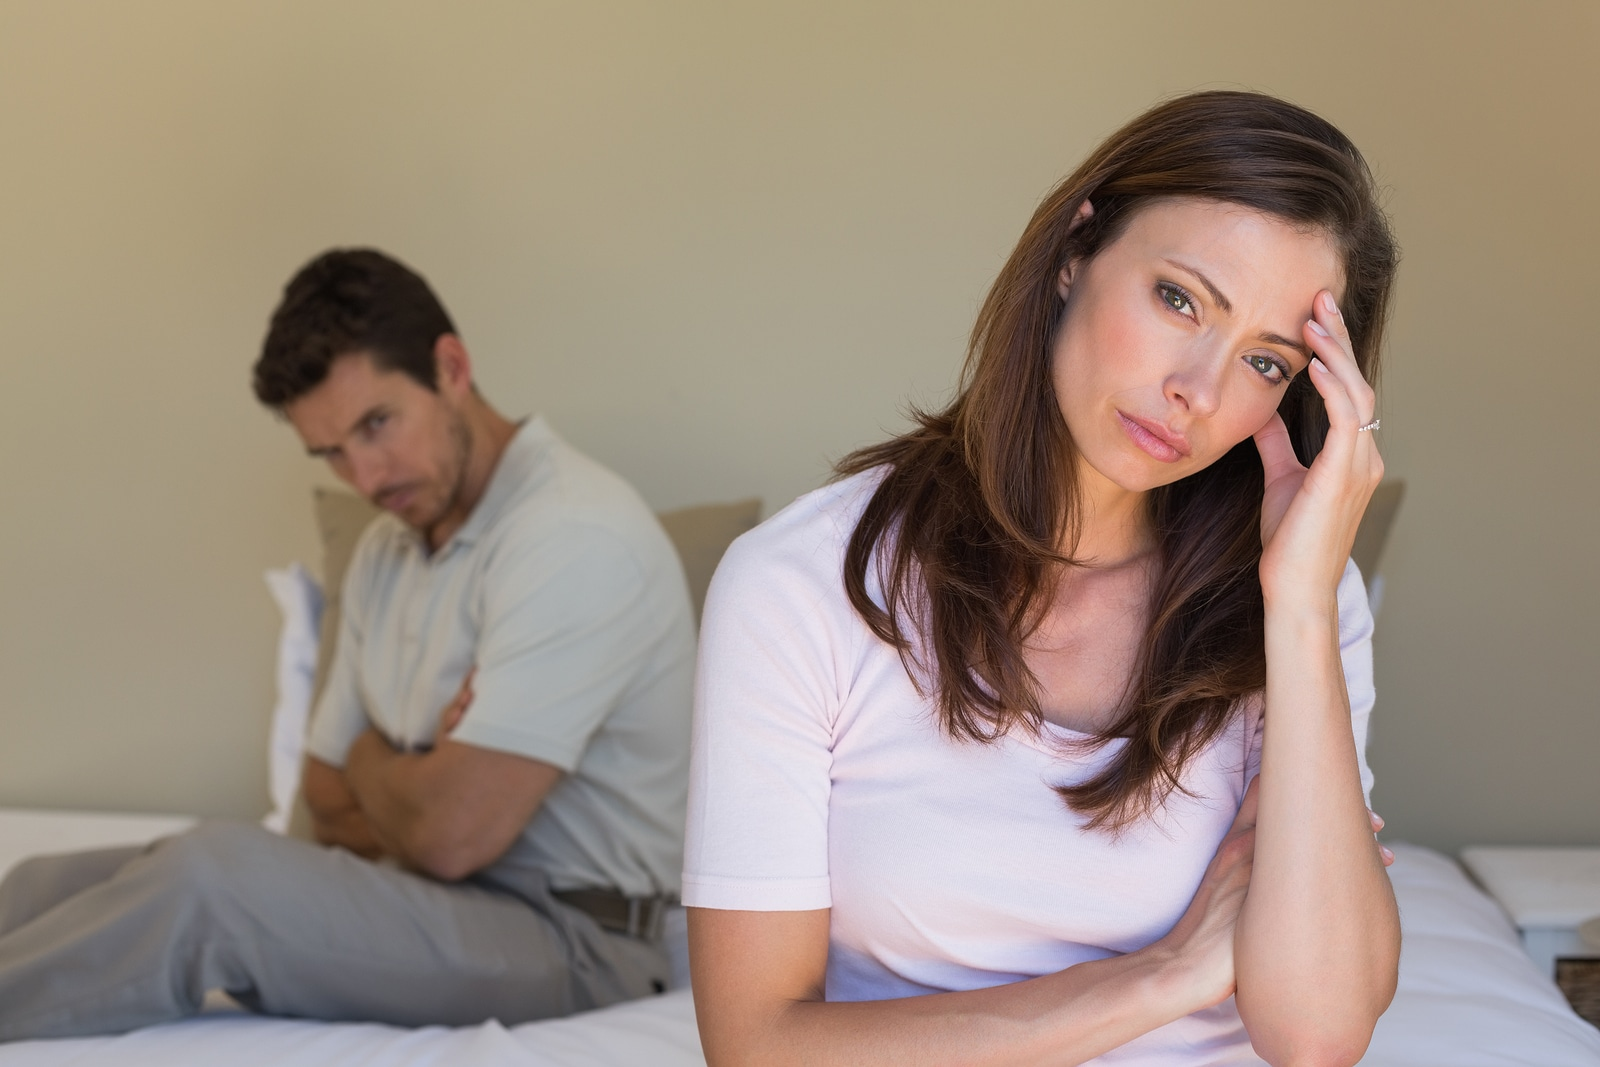 an argument in favor of allowing divorced remarried men to become deacons If we treated divorce like killing december 13, 2017 december 14, 2017 / biblicalgenderroles if we treated divorce like we do killing there would be far less.